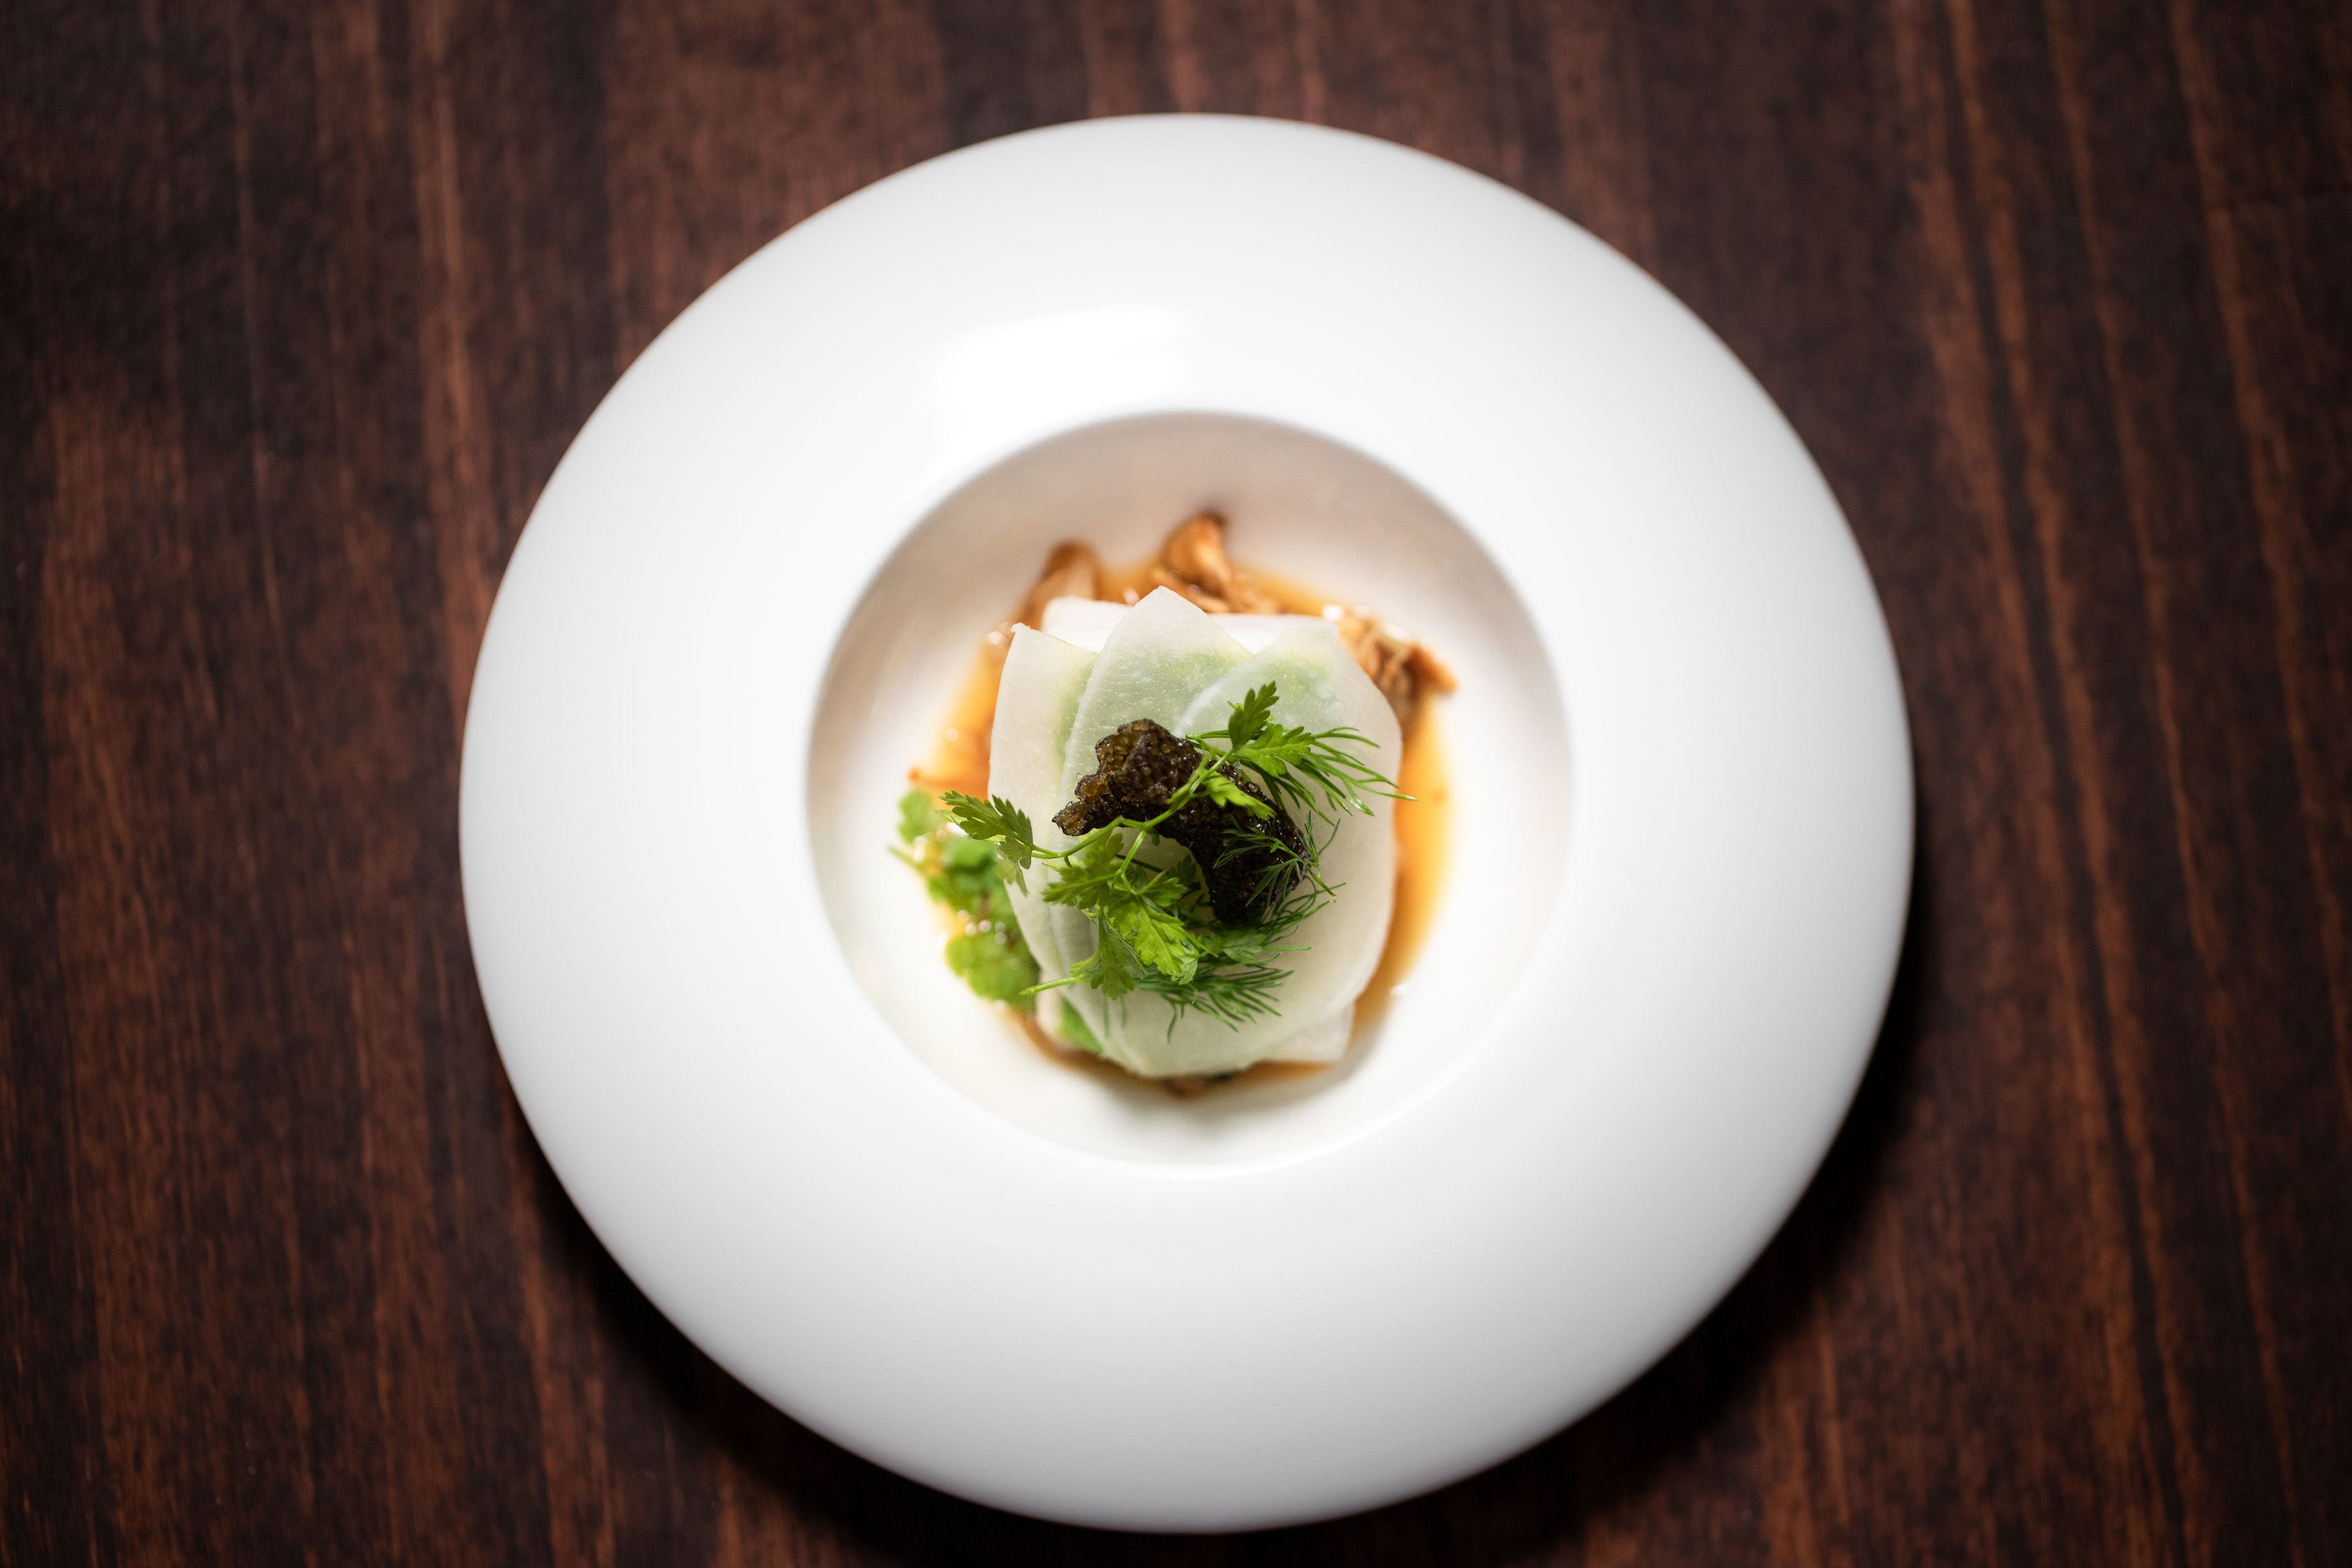 Top-down view of black cod with matsutake mushroom, turnups, and dill on a white plate.